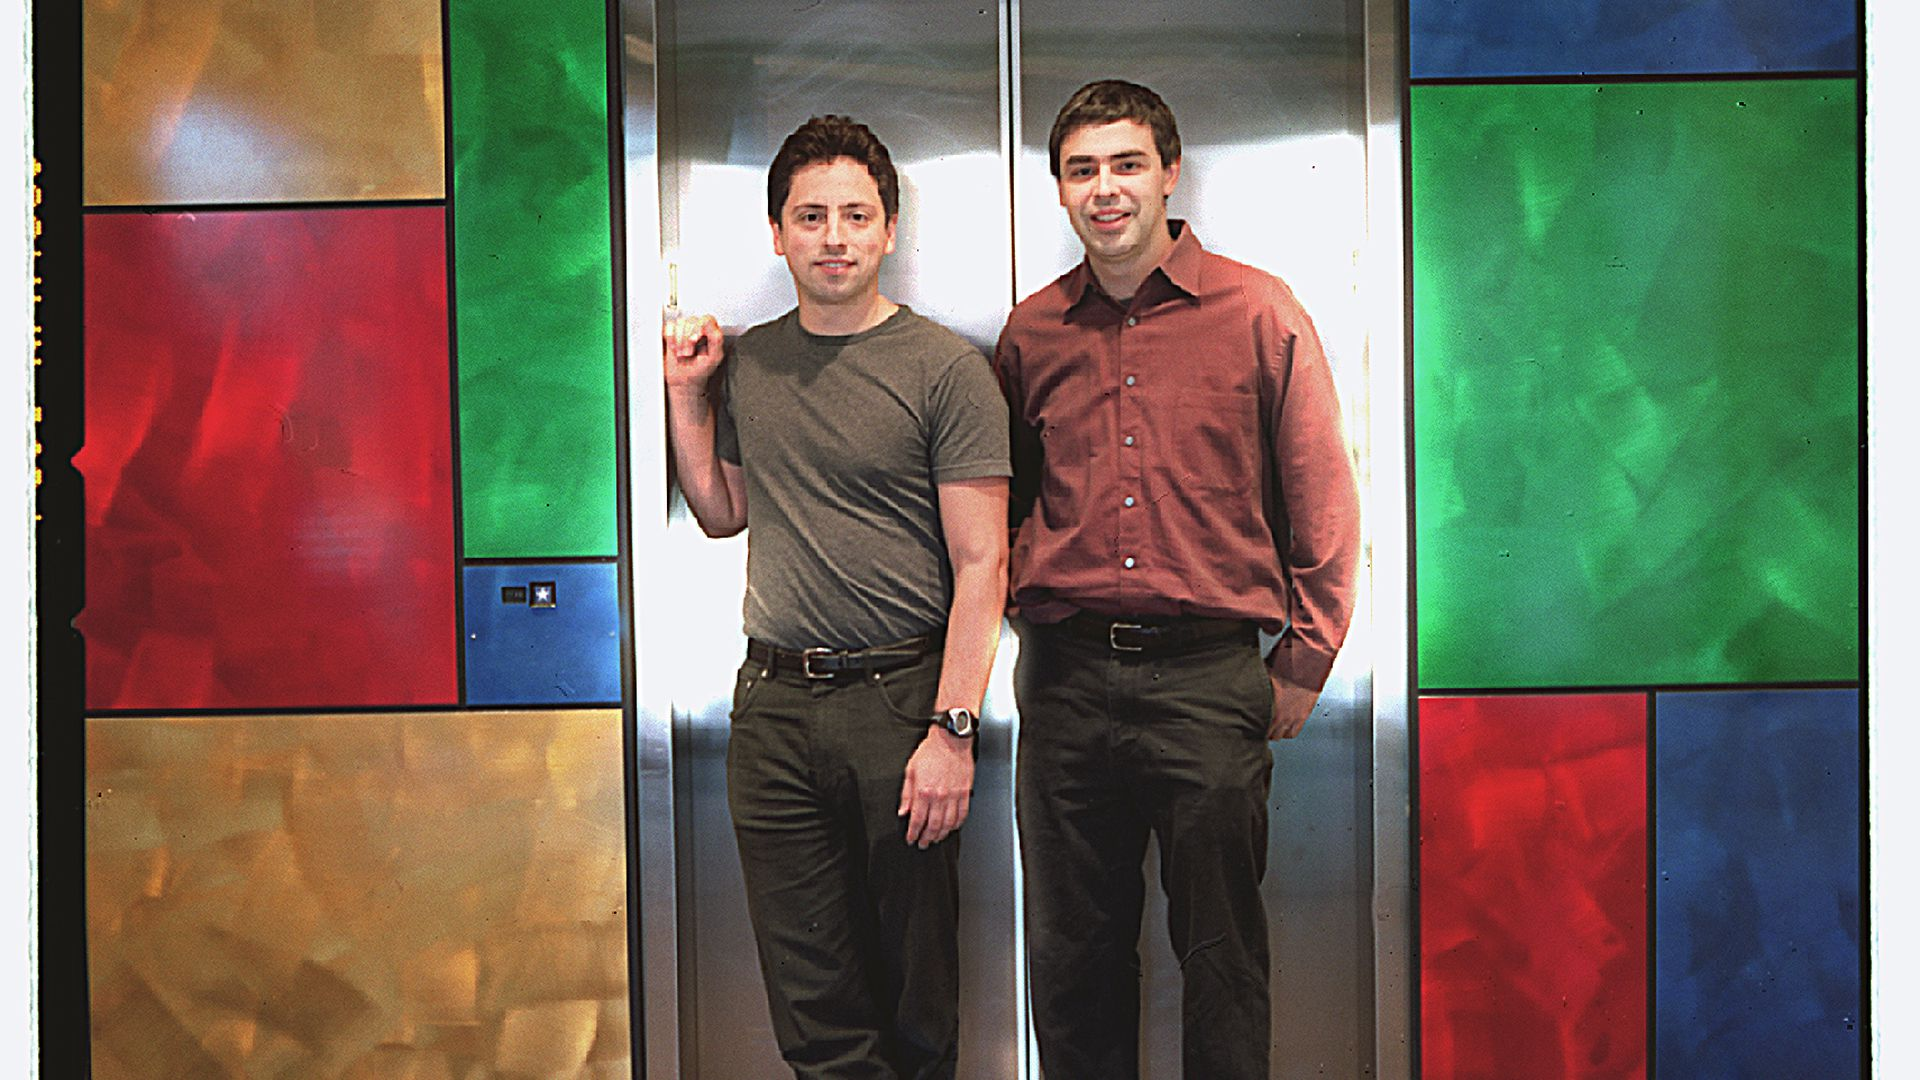 Photo of Google founders Sergey Brin and Larry Page in 2002 leaving an elevator at Google's office